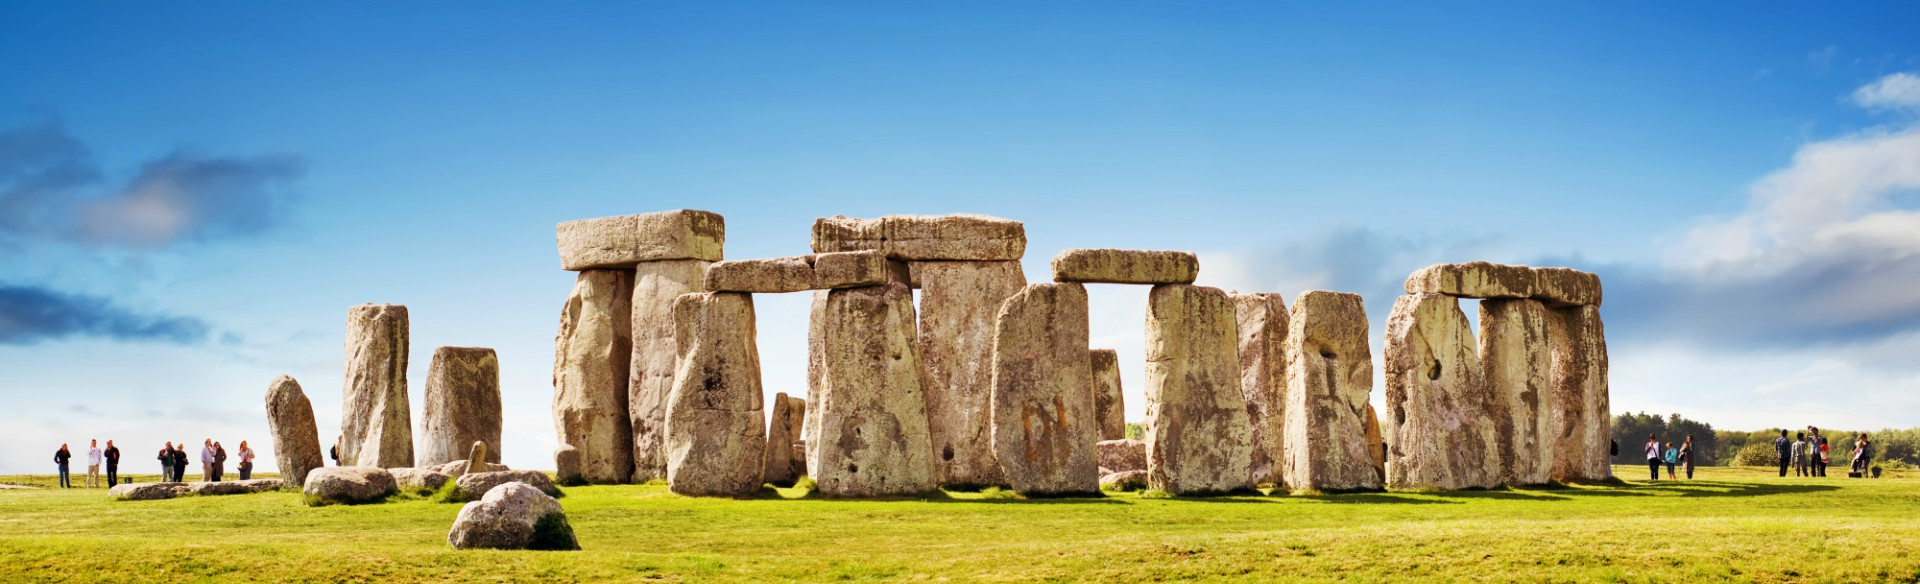 Adults dating are we gonna do stonehenge tickets england